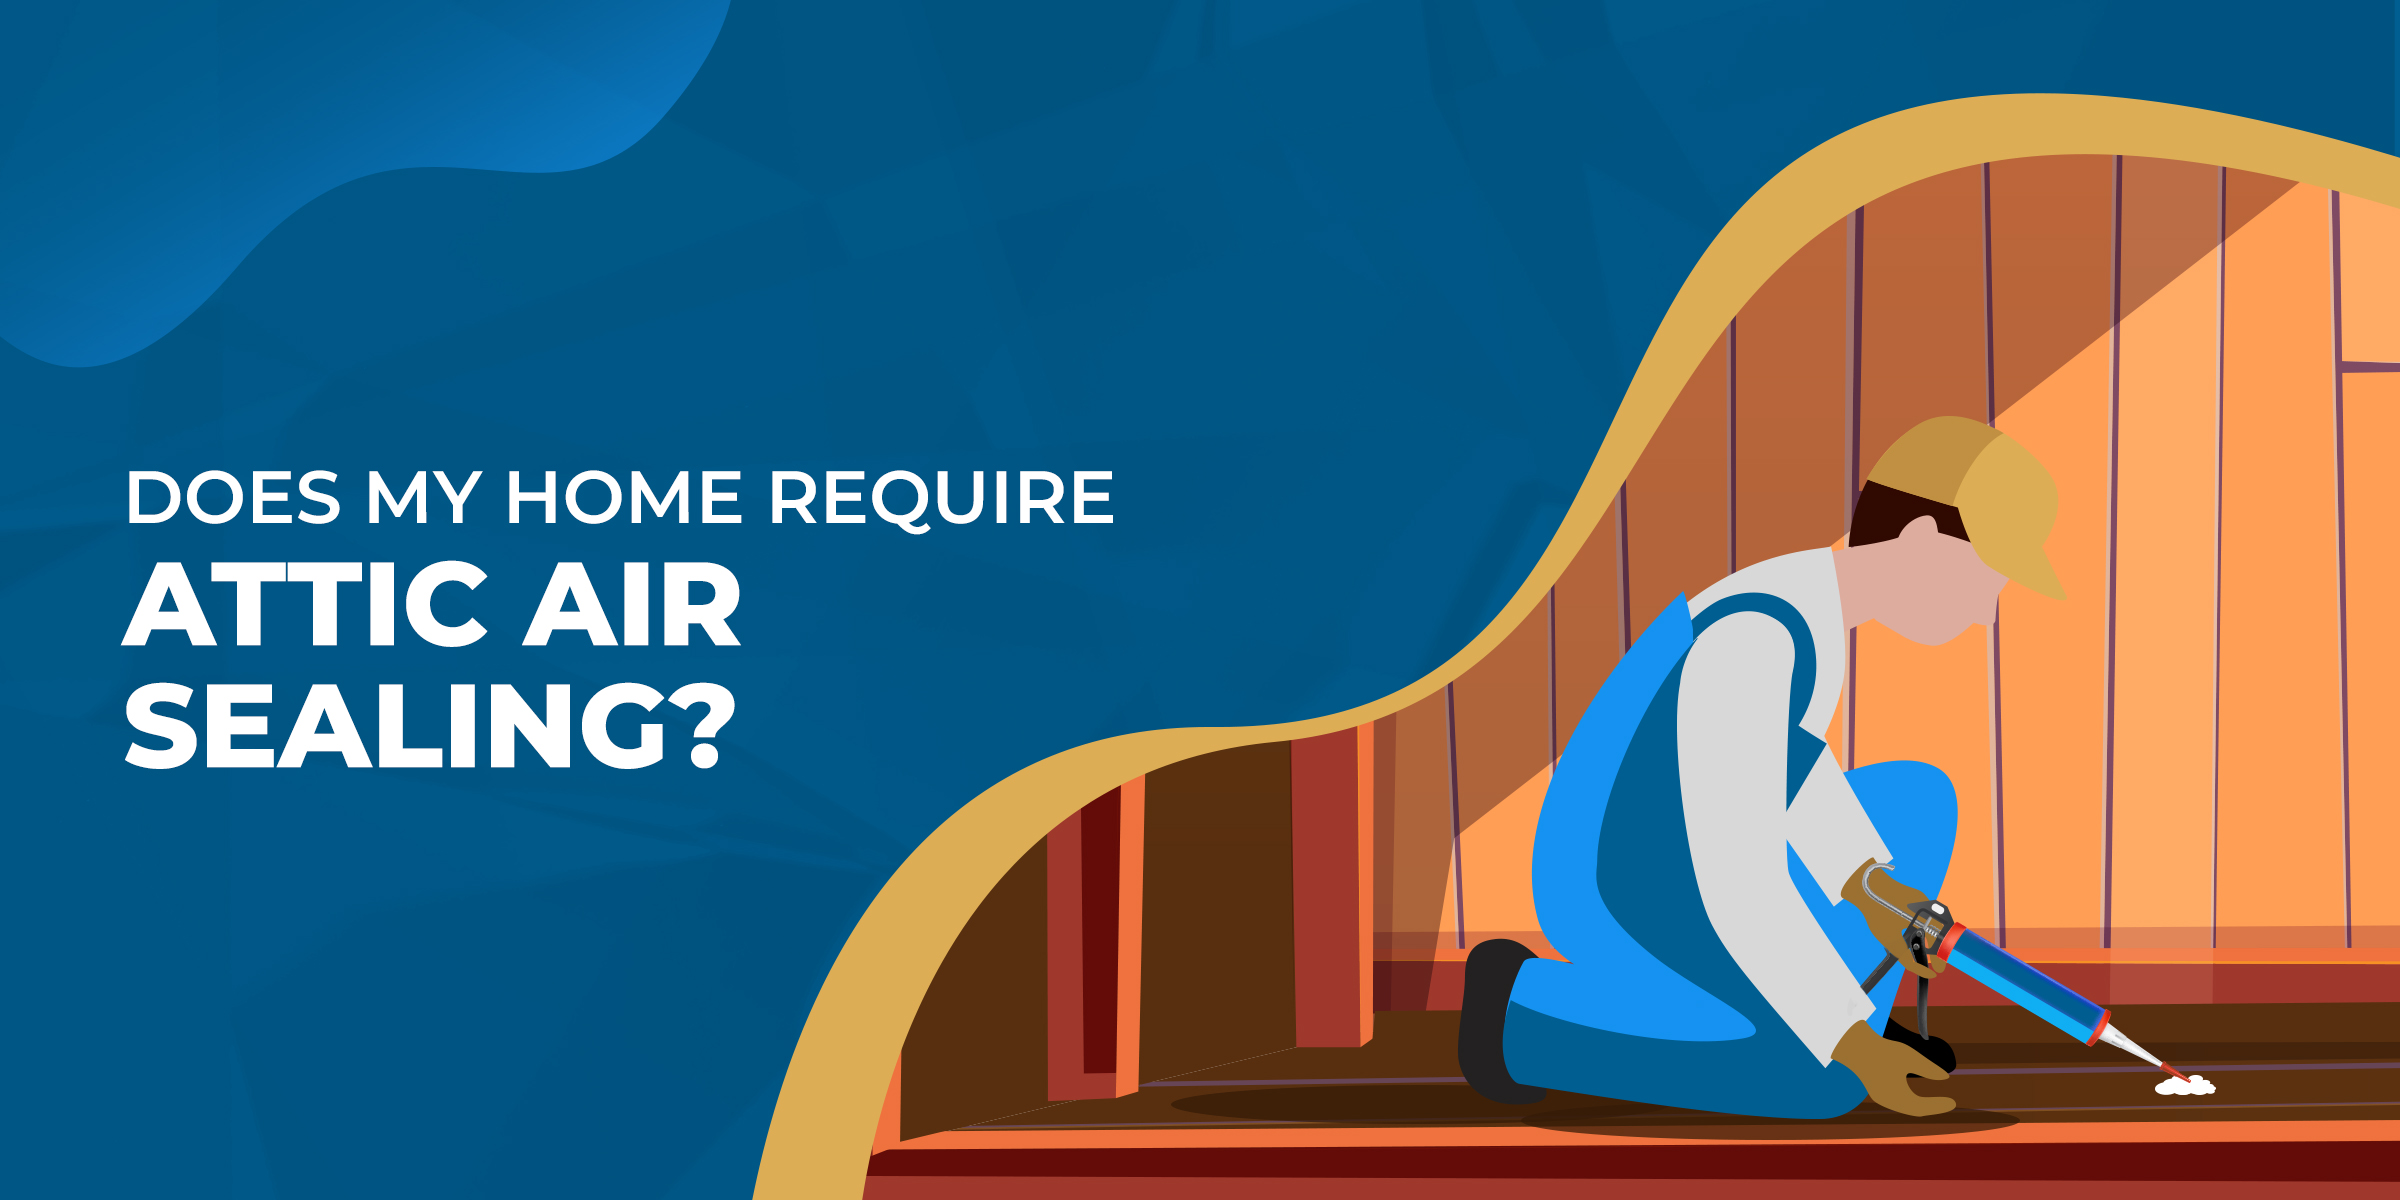 Does My Home Require Attic Air Sealing